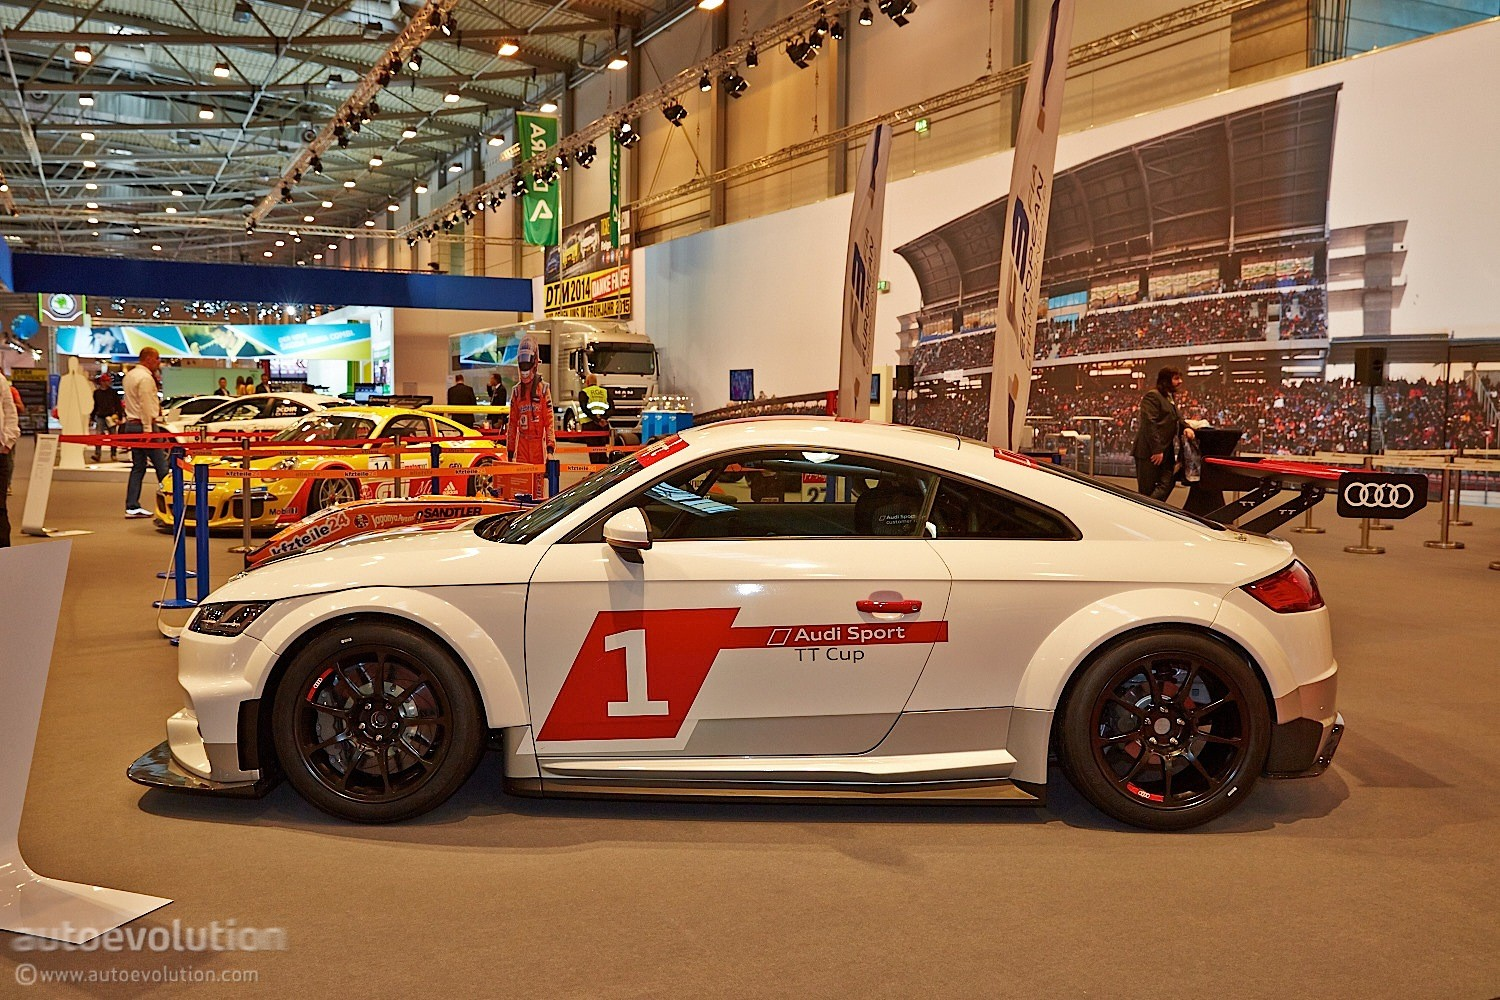 340 hp audi sport tt cup racer shows grass roots at essen 2014 live photos autoevolution. Black Bedroom Furniture Sets. Home Design Ideas